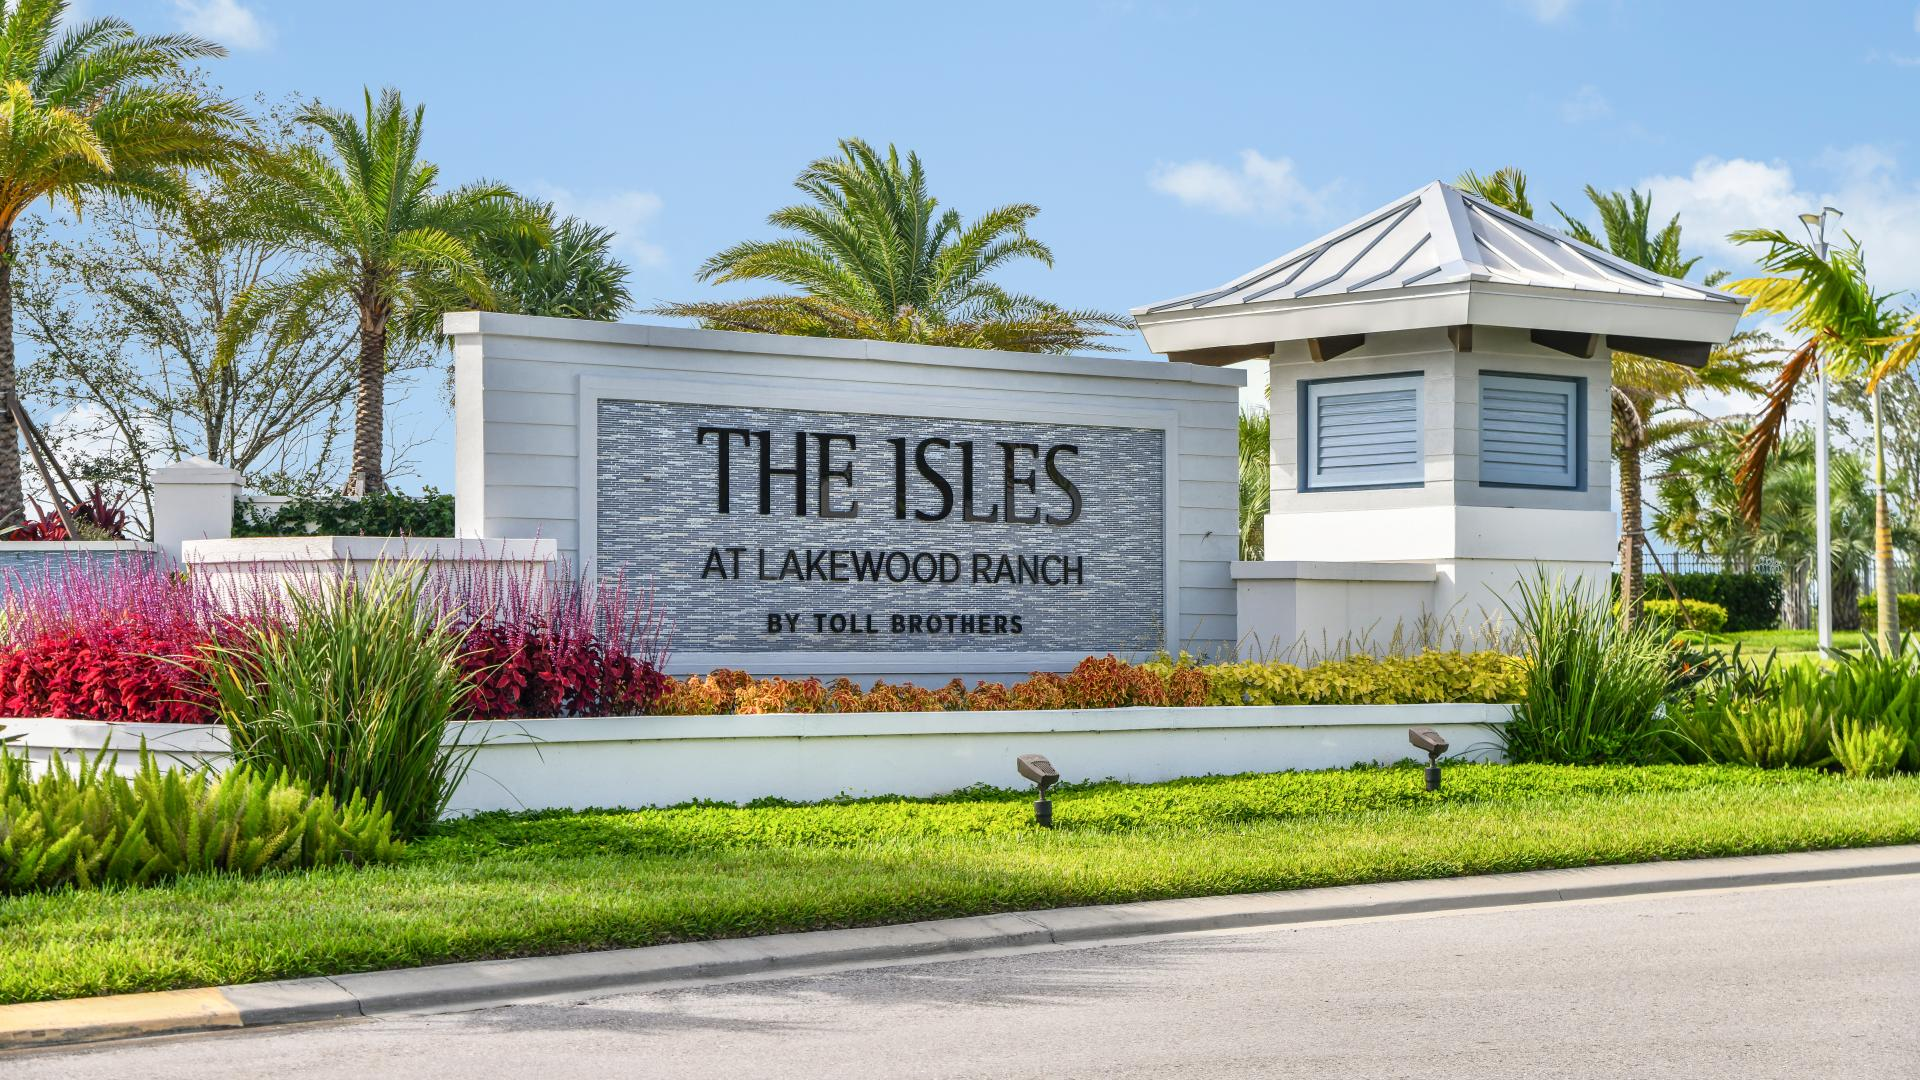 Welcome home to The Isles at Lakewood Ranch by Toll Brothers